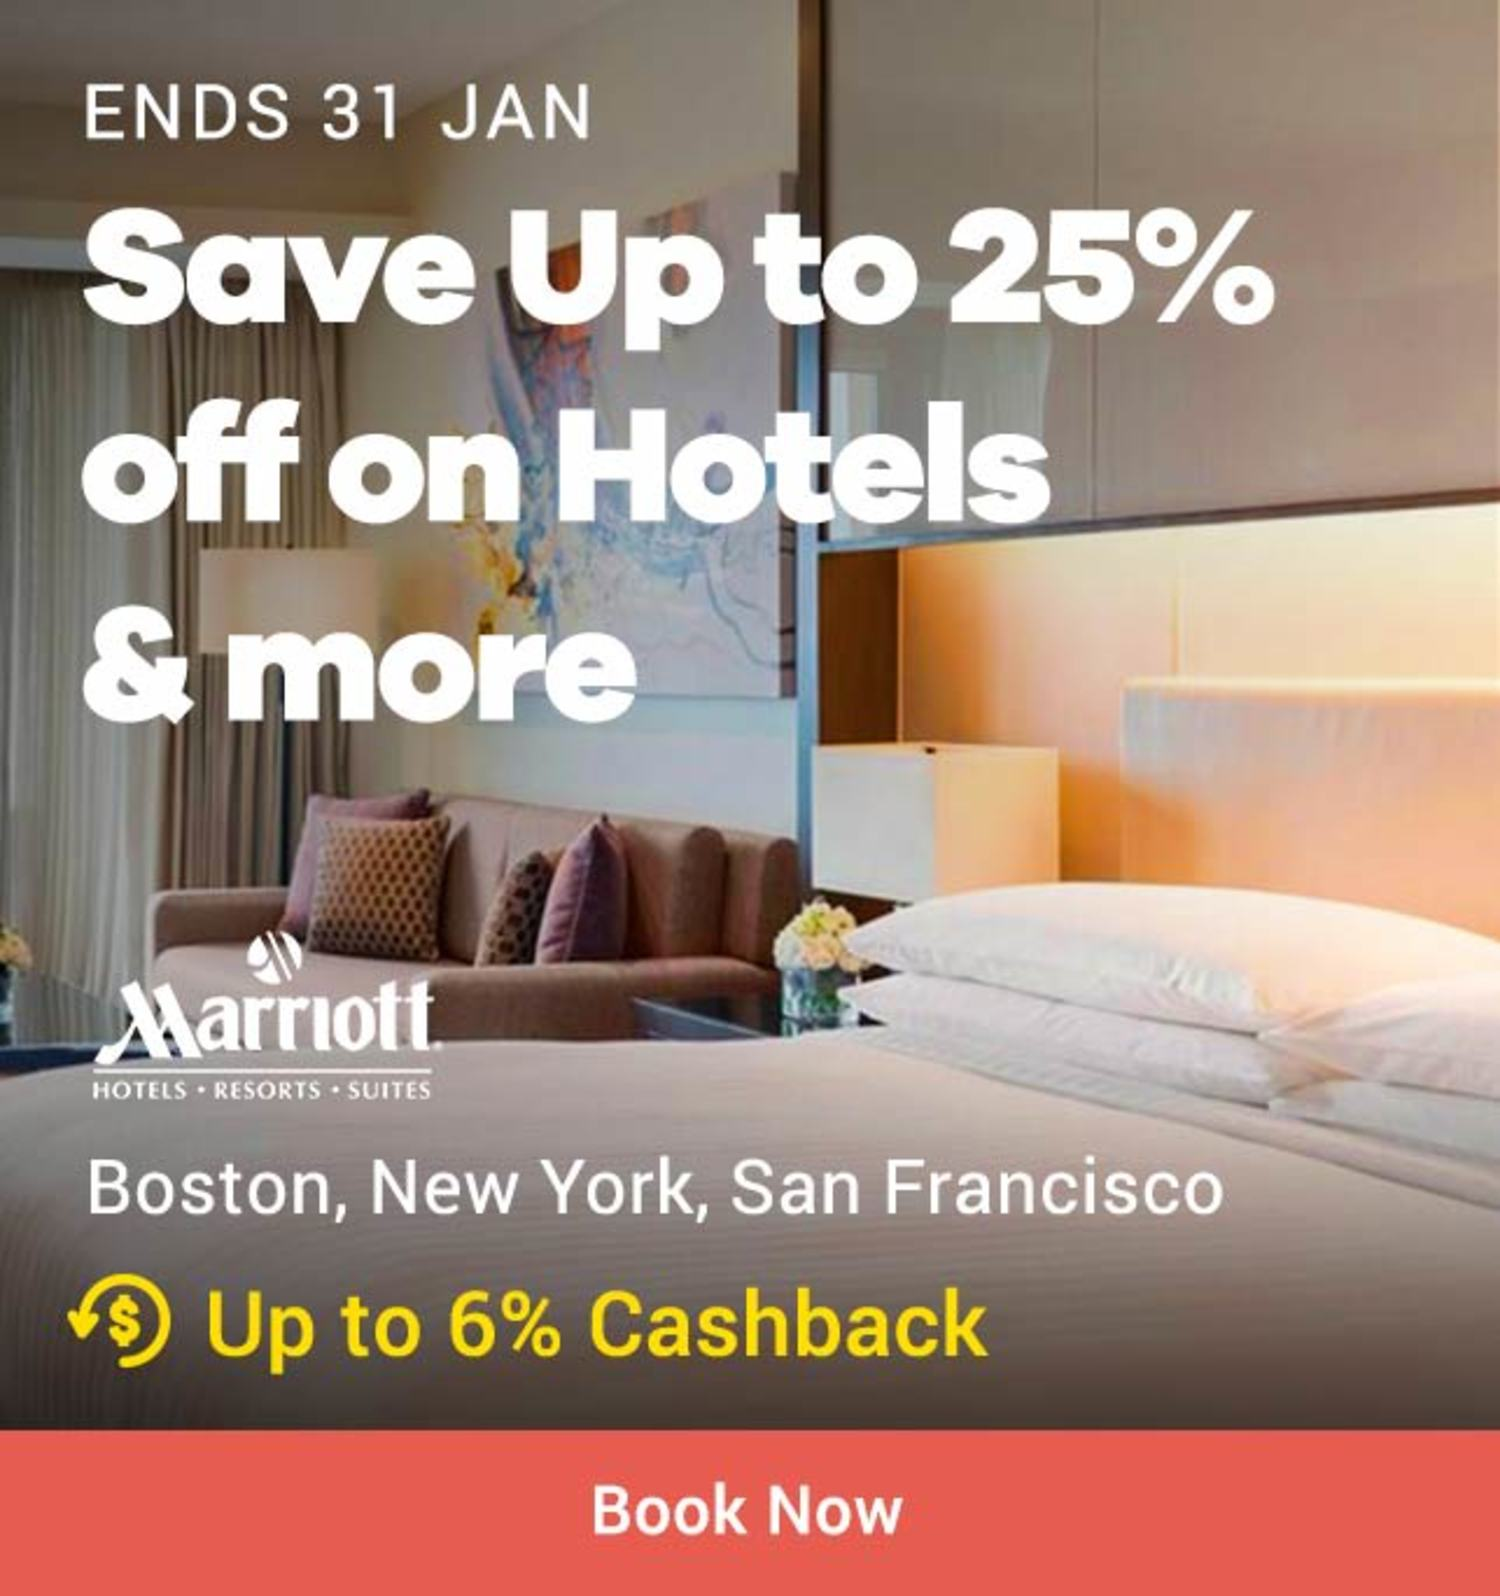 Marriot: Save Up to 25% off on Hotels & more